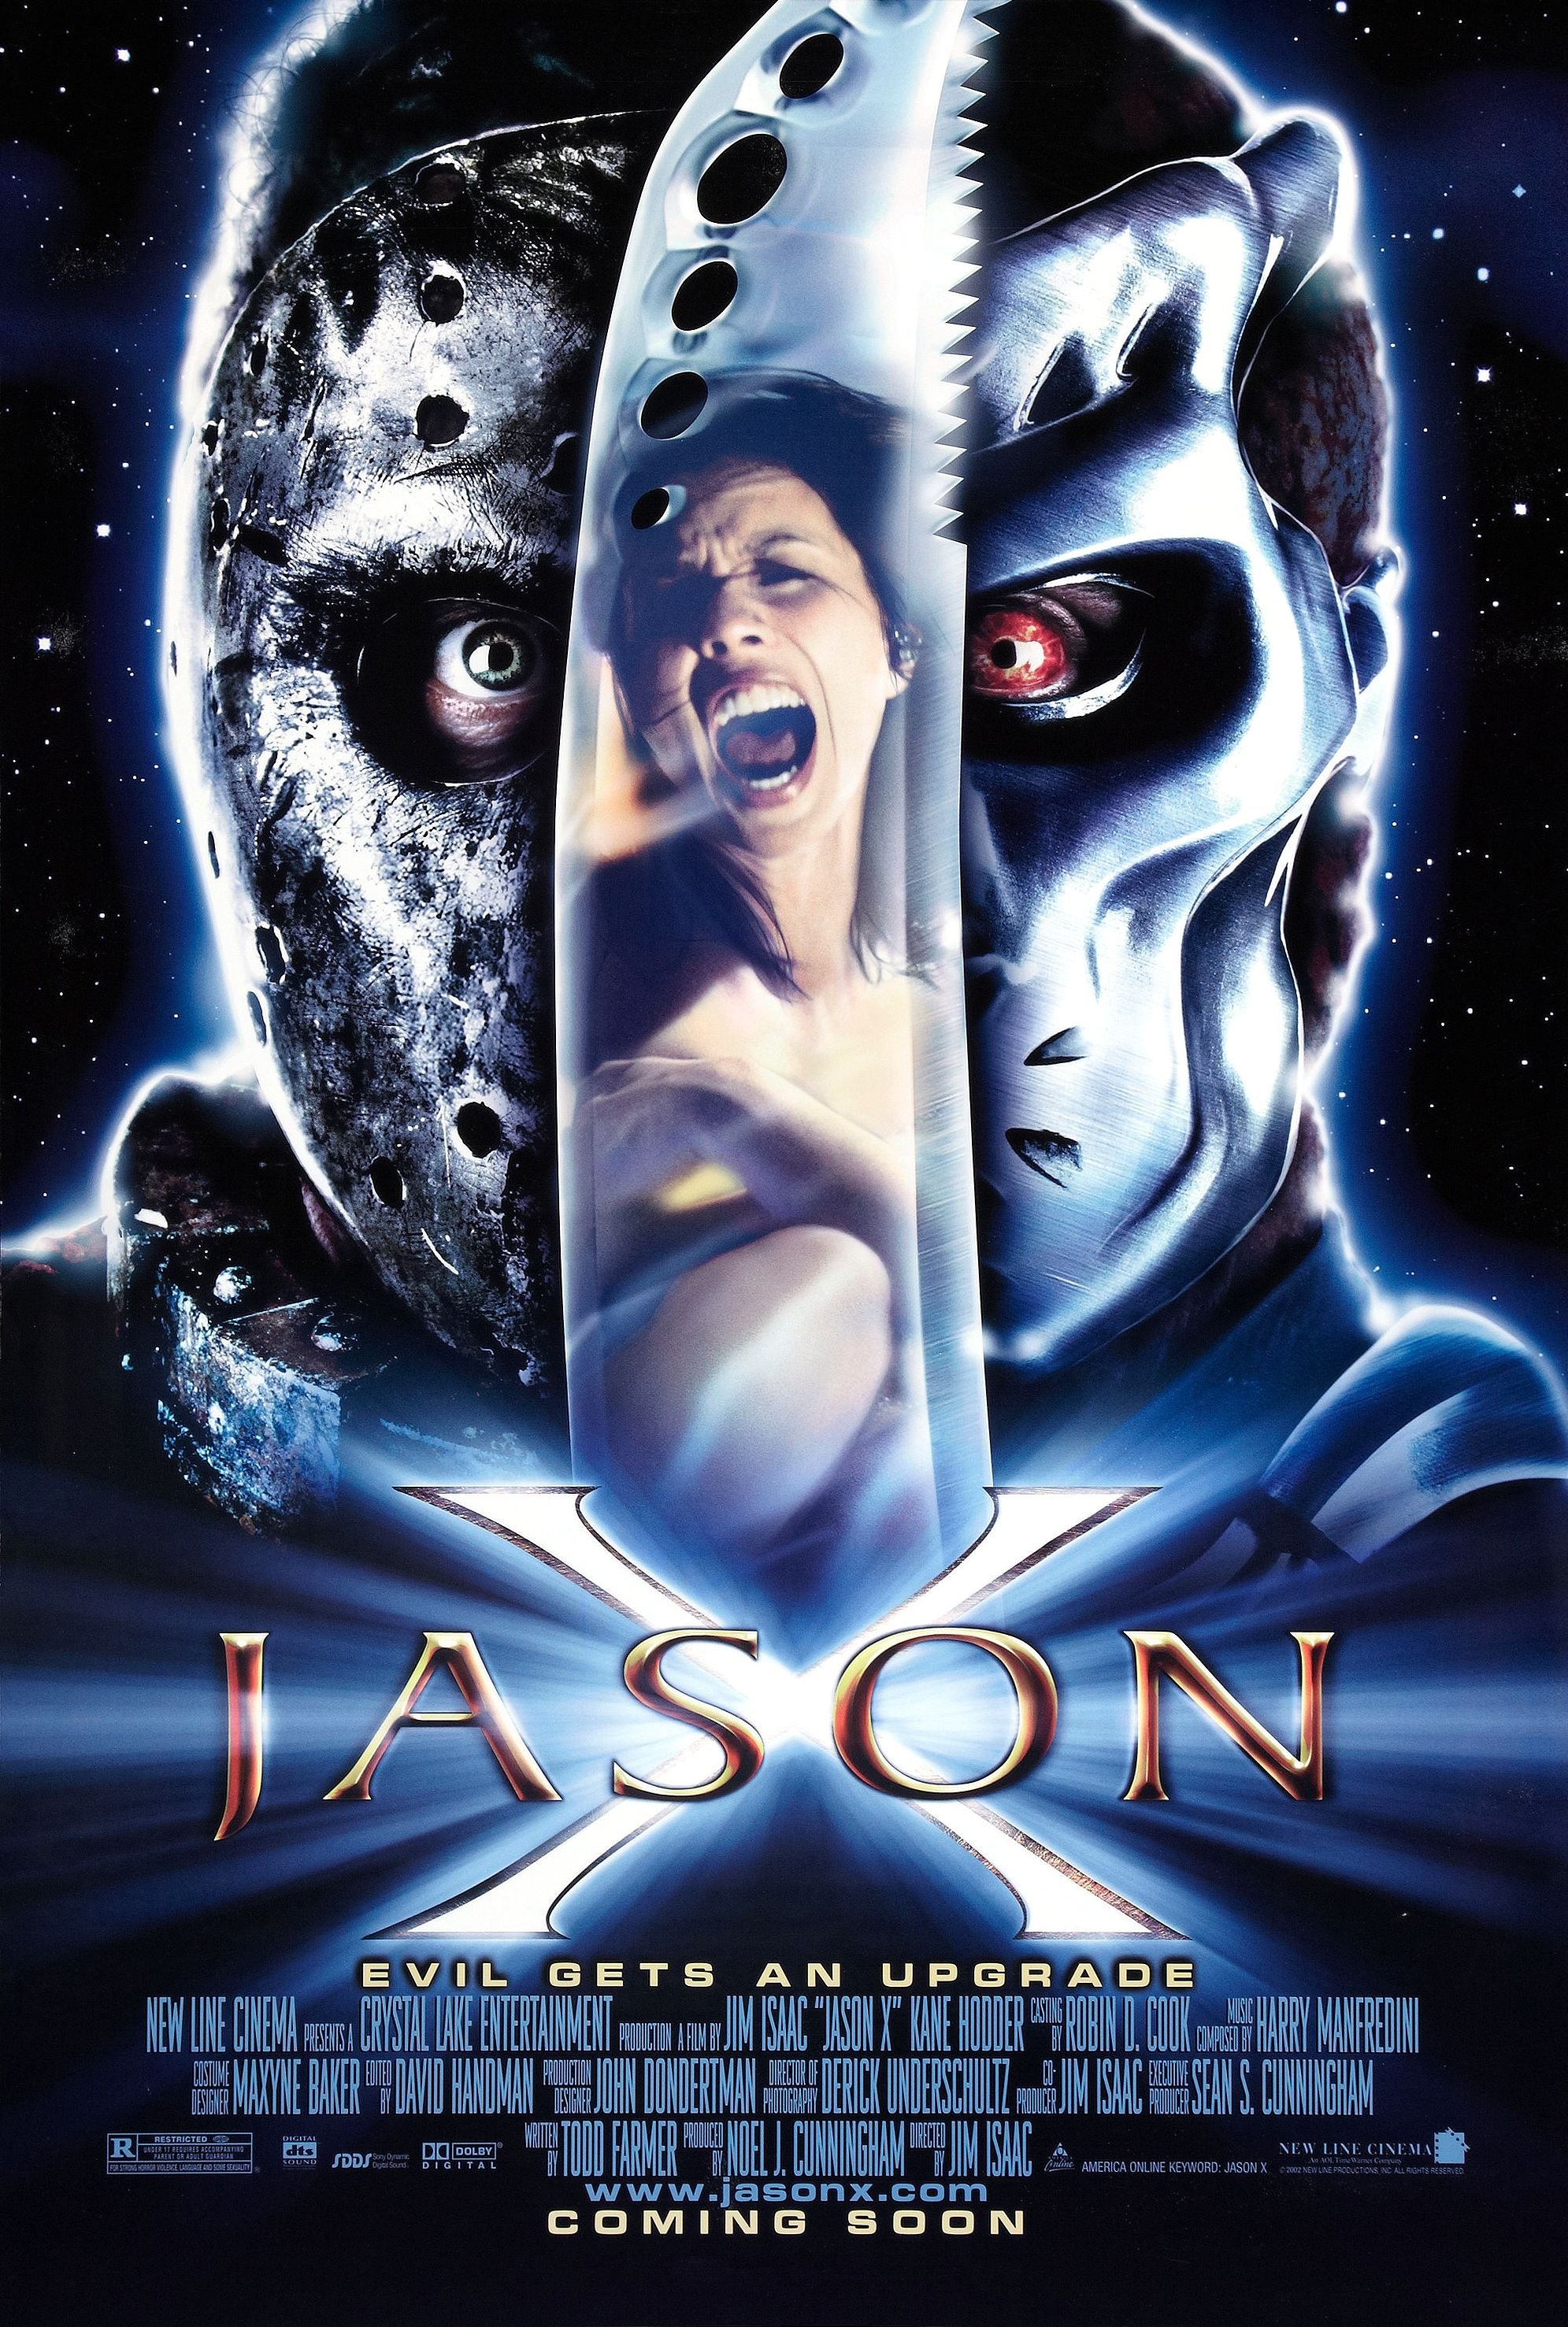 jason x poster Ranking: Every Friday the 13th Movie from Worst to Best